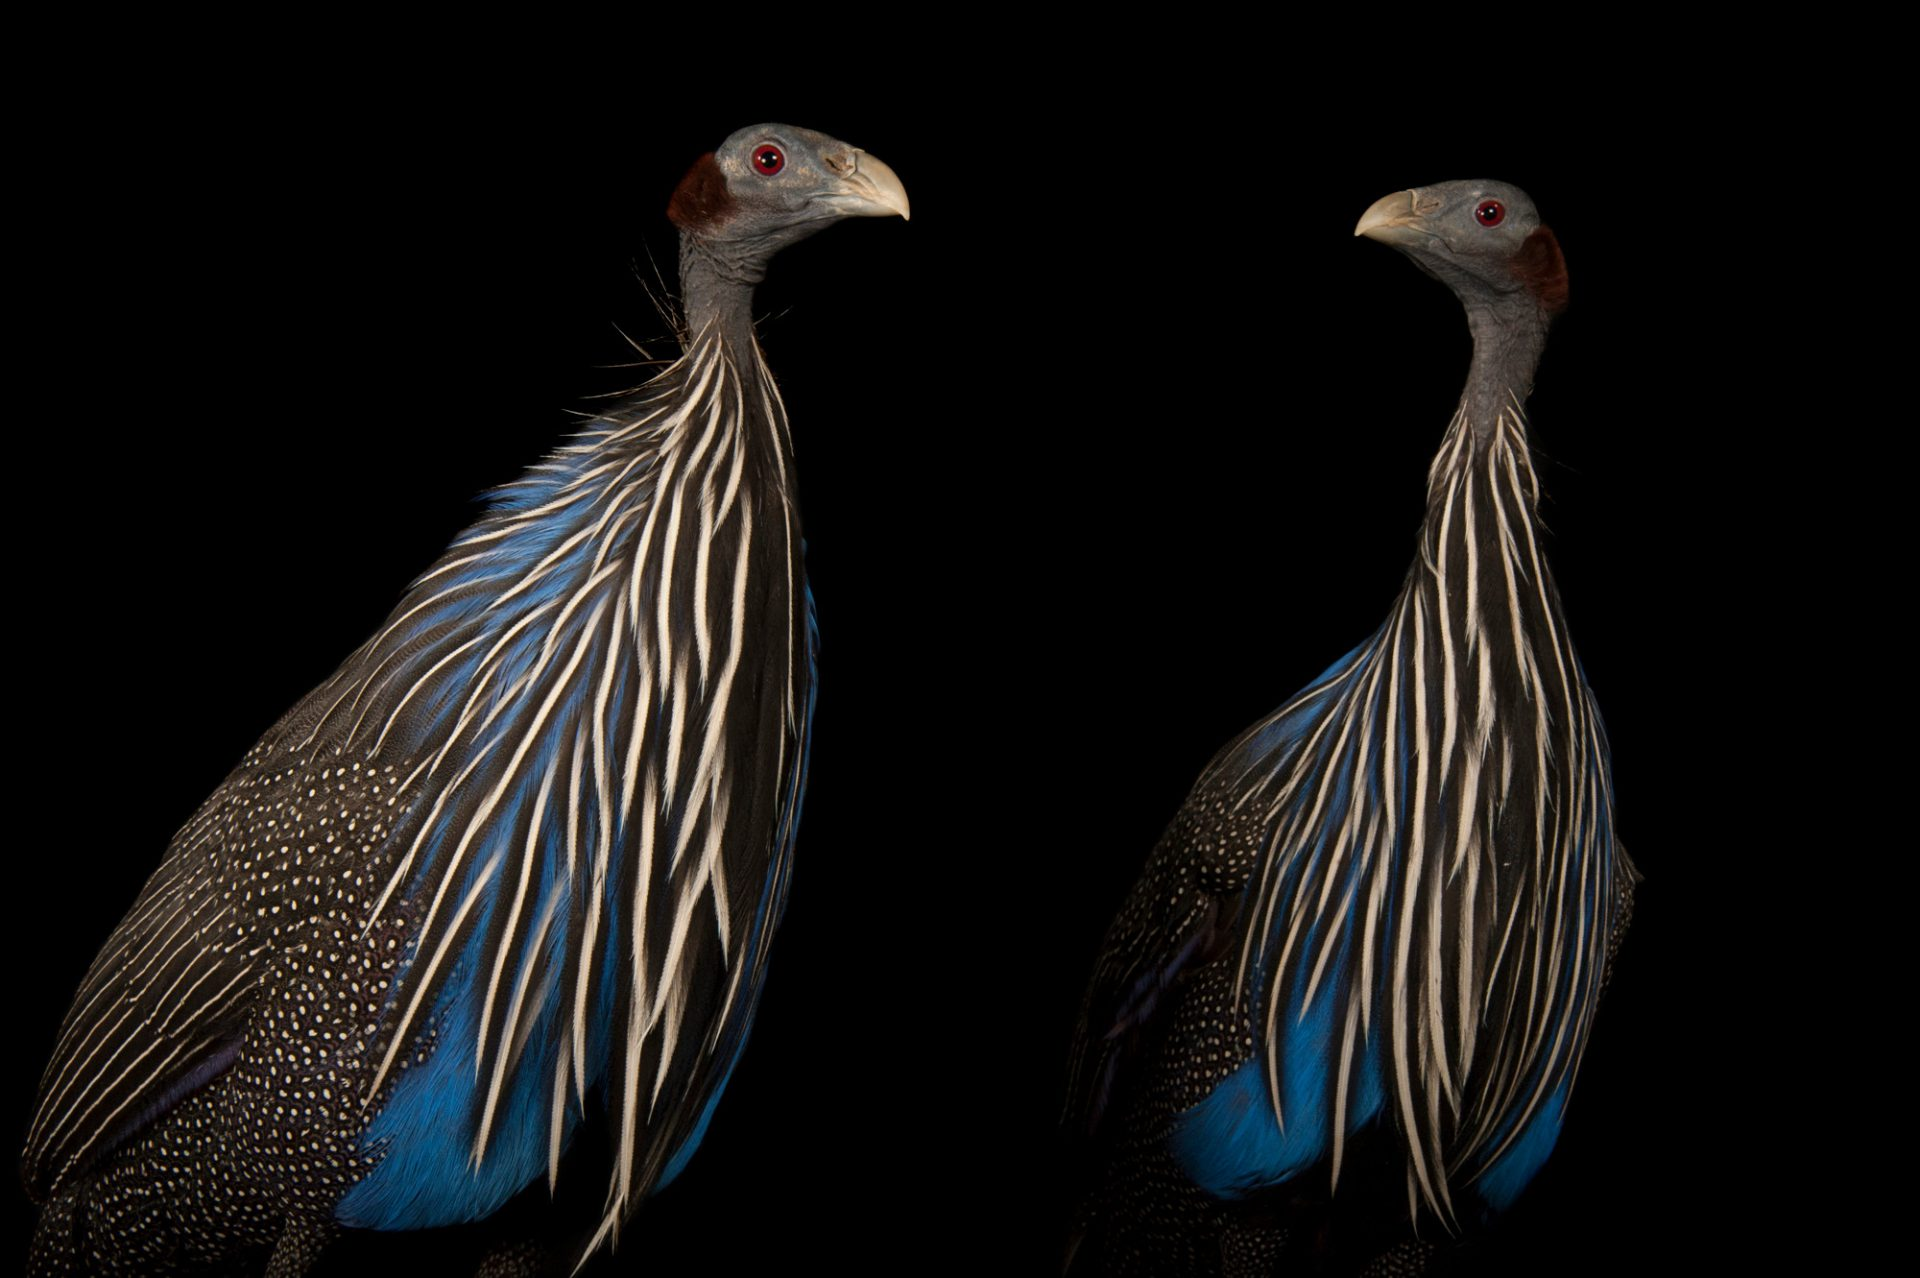 Photo: A pair of Vulturine guineafowl, Acryllium vulturinum.